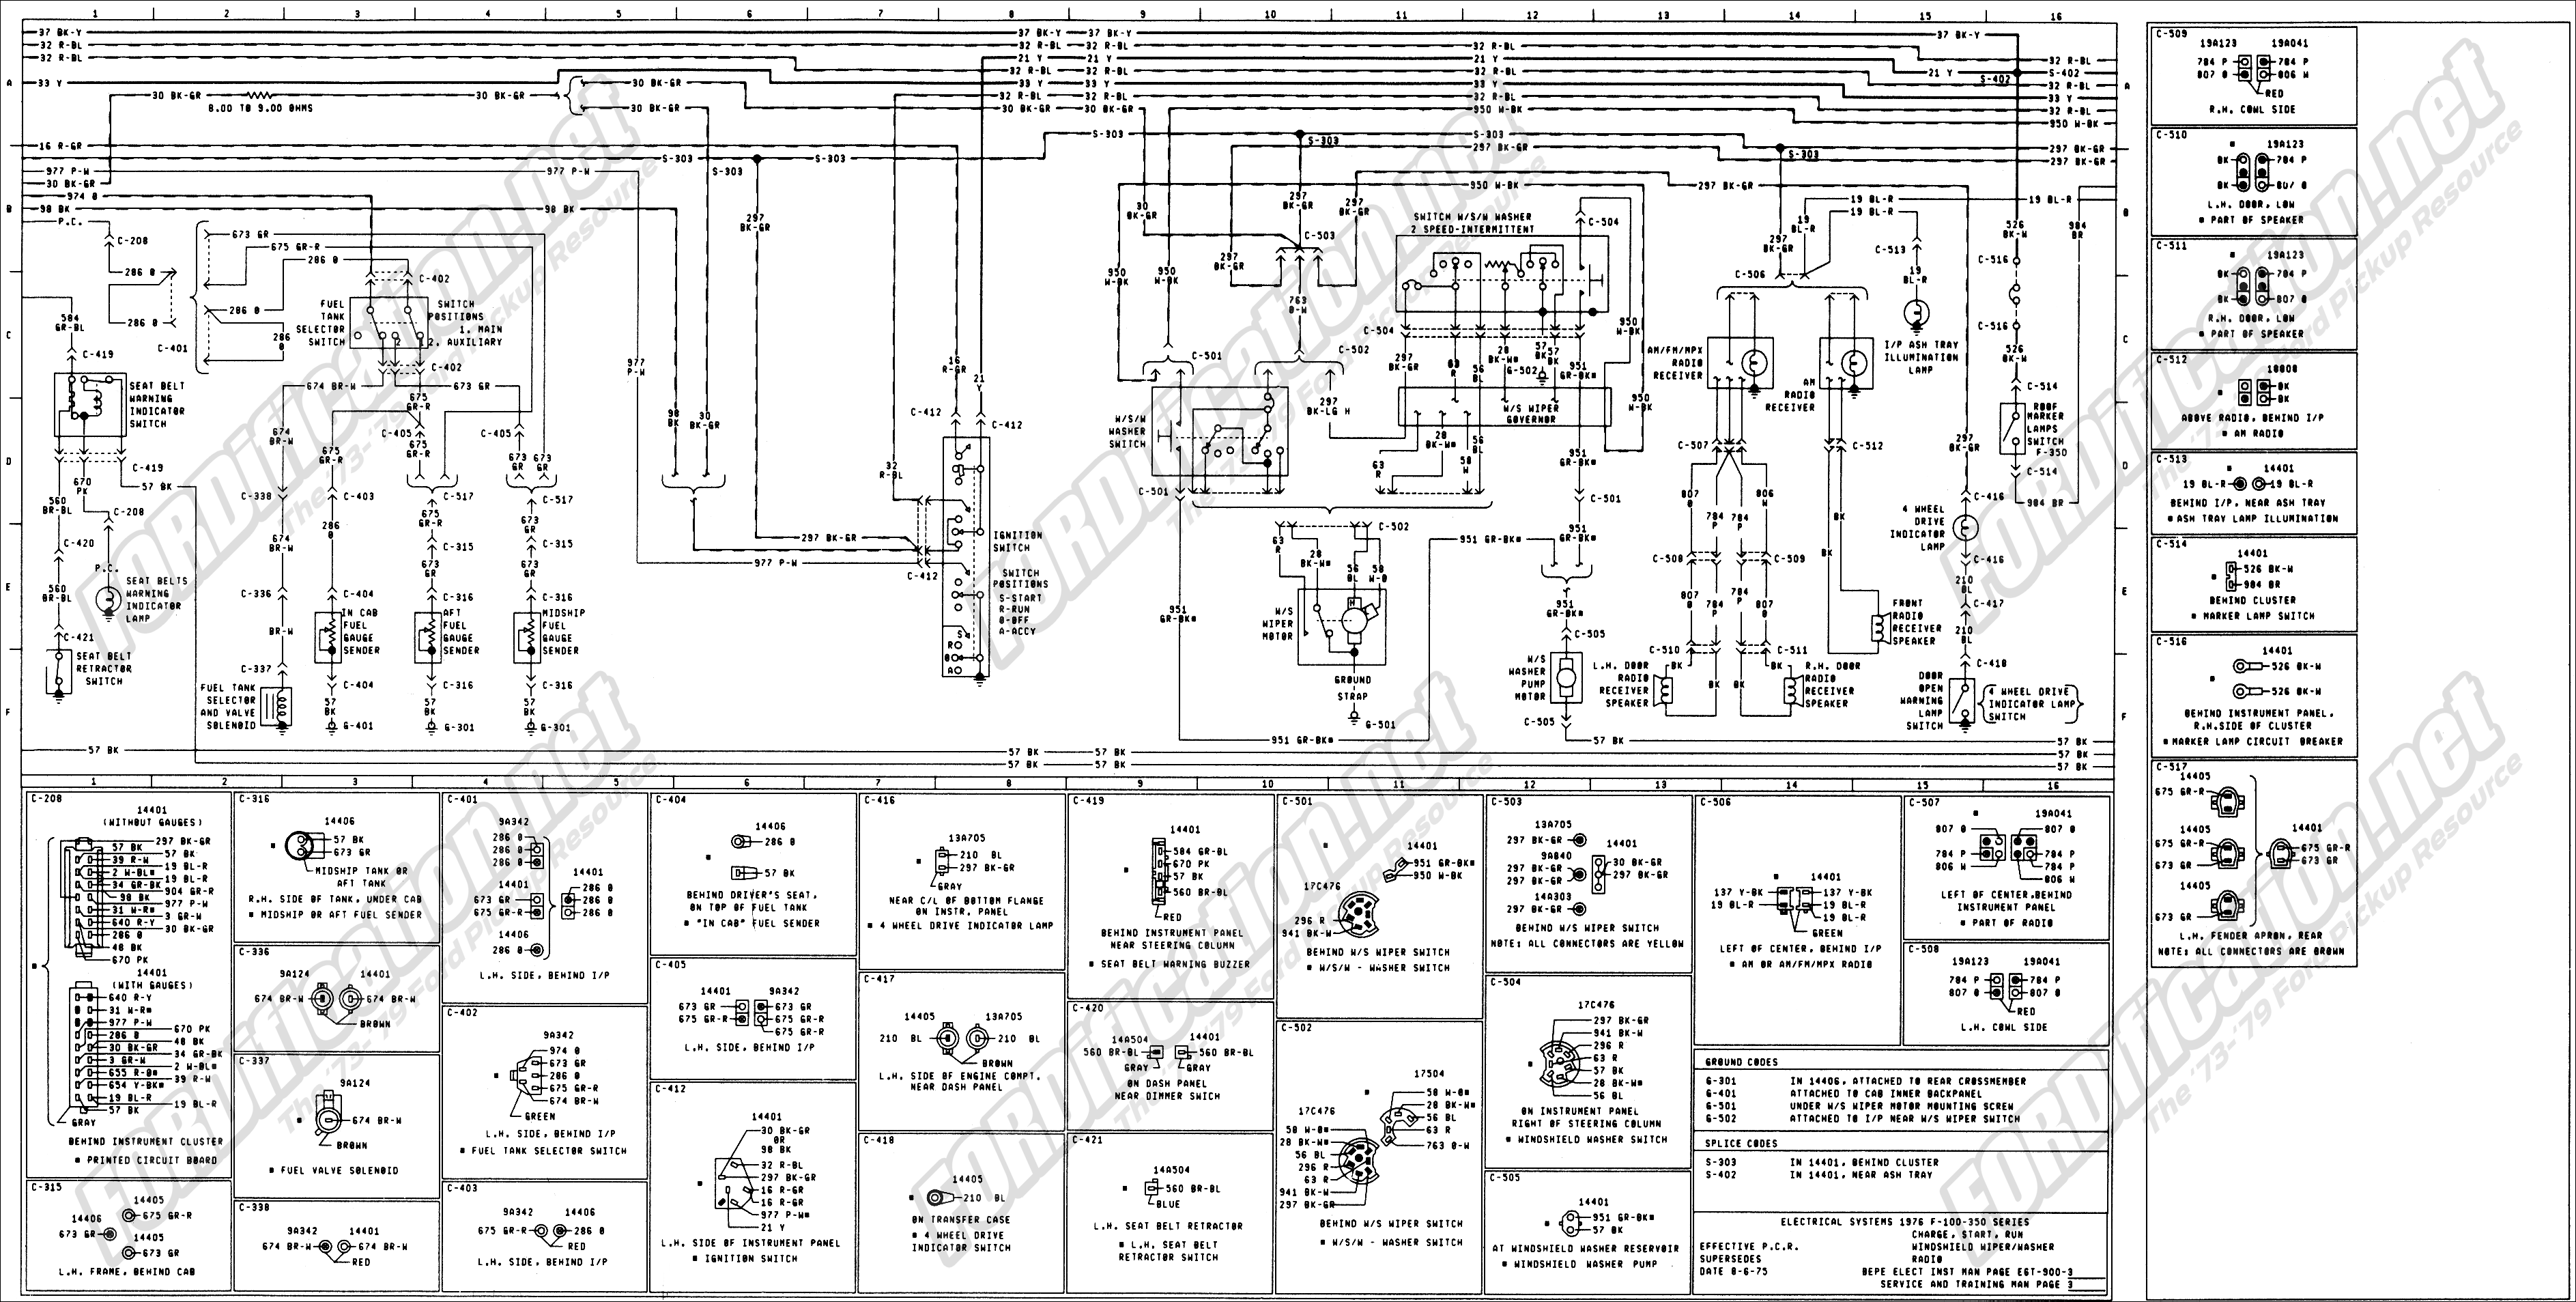 2001 Ford Mustang Ac Wiring | Wiring Diagram  Mustang Ac Wiring Diagram on 89 mustang wiring diagram, 02 mustang fuse chart, 90 mustang wiring diagram, 2006 mustang wiring diagram, 88 mustang wiring diagram, 91 mustang wiring diagram, 93 mustang wiring diagram, 02 mustang oil filter, 02 mustang fuel pump wiring, 86 mustang wiring diagram, 92 mustang wiring diagram, 96 mustang wiring diagram, 02 mustang headlight, 02 mustang motor, 02 mustang radio, 94 mustang wiring diagram, 02 mustang engine, 2002 mustang wiring diagram, 95 mustang wiring diagram, 04 mustang wiring diagram,